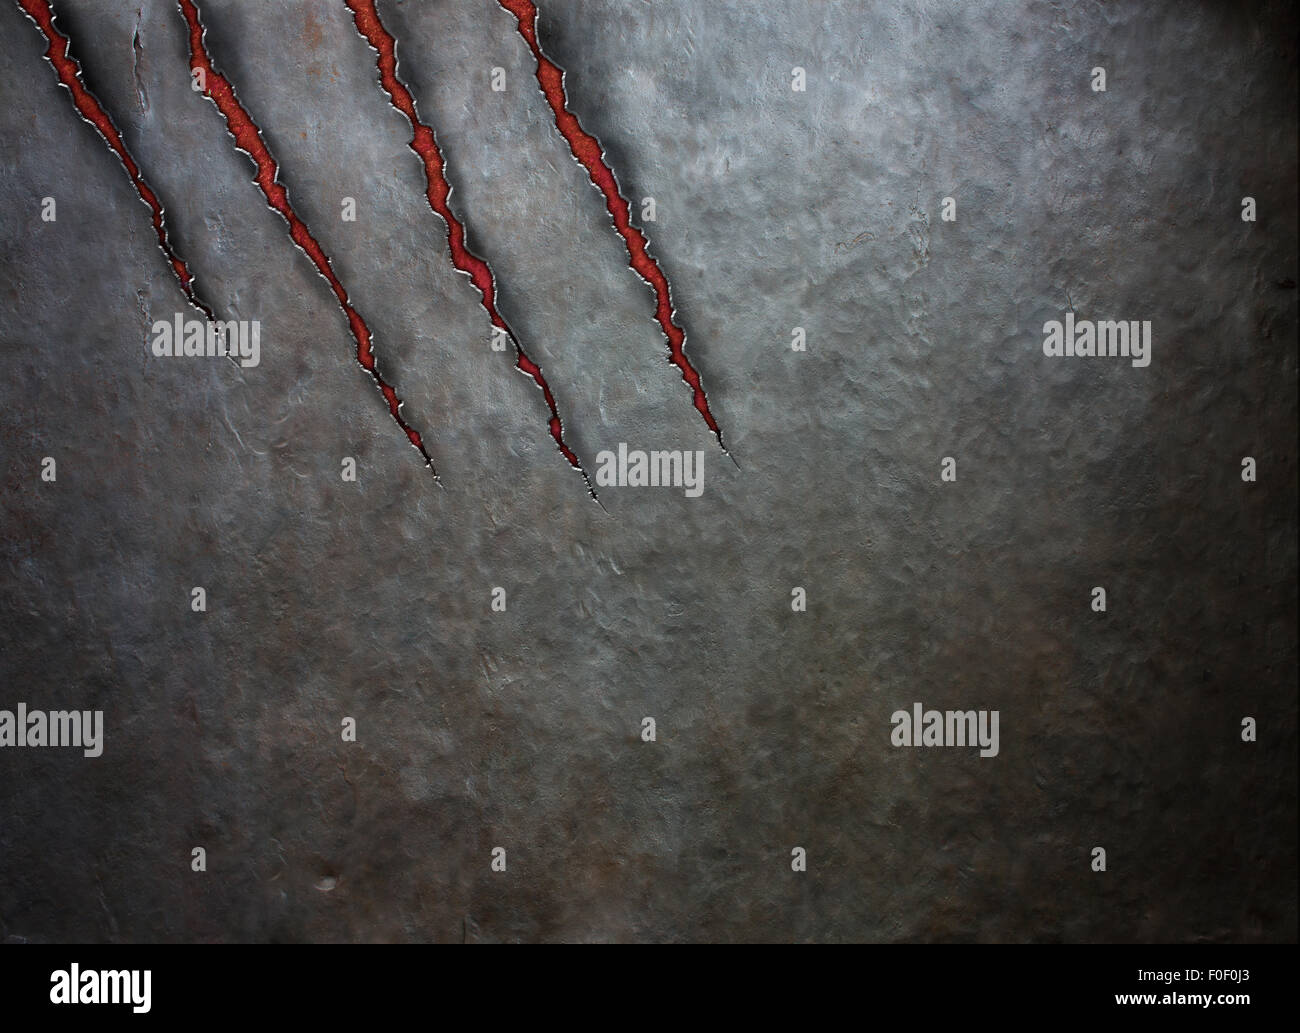 metal scratched by beast claws - Stock Image